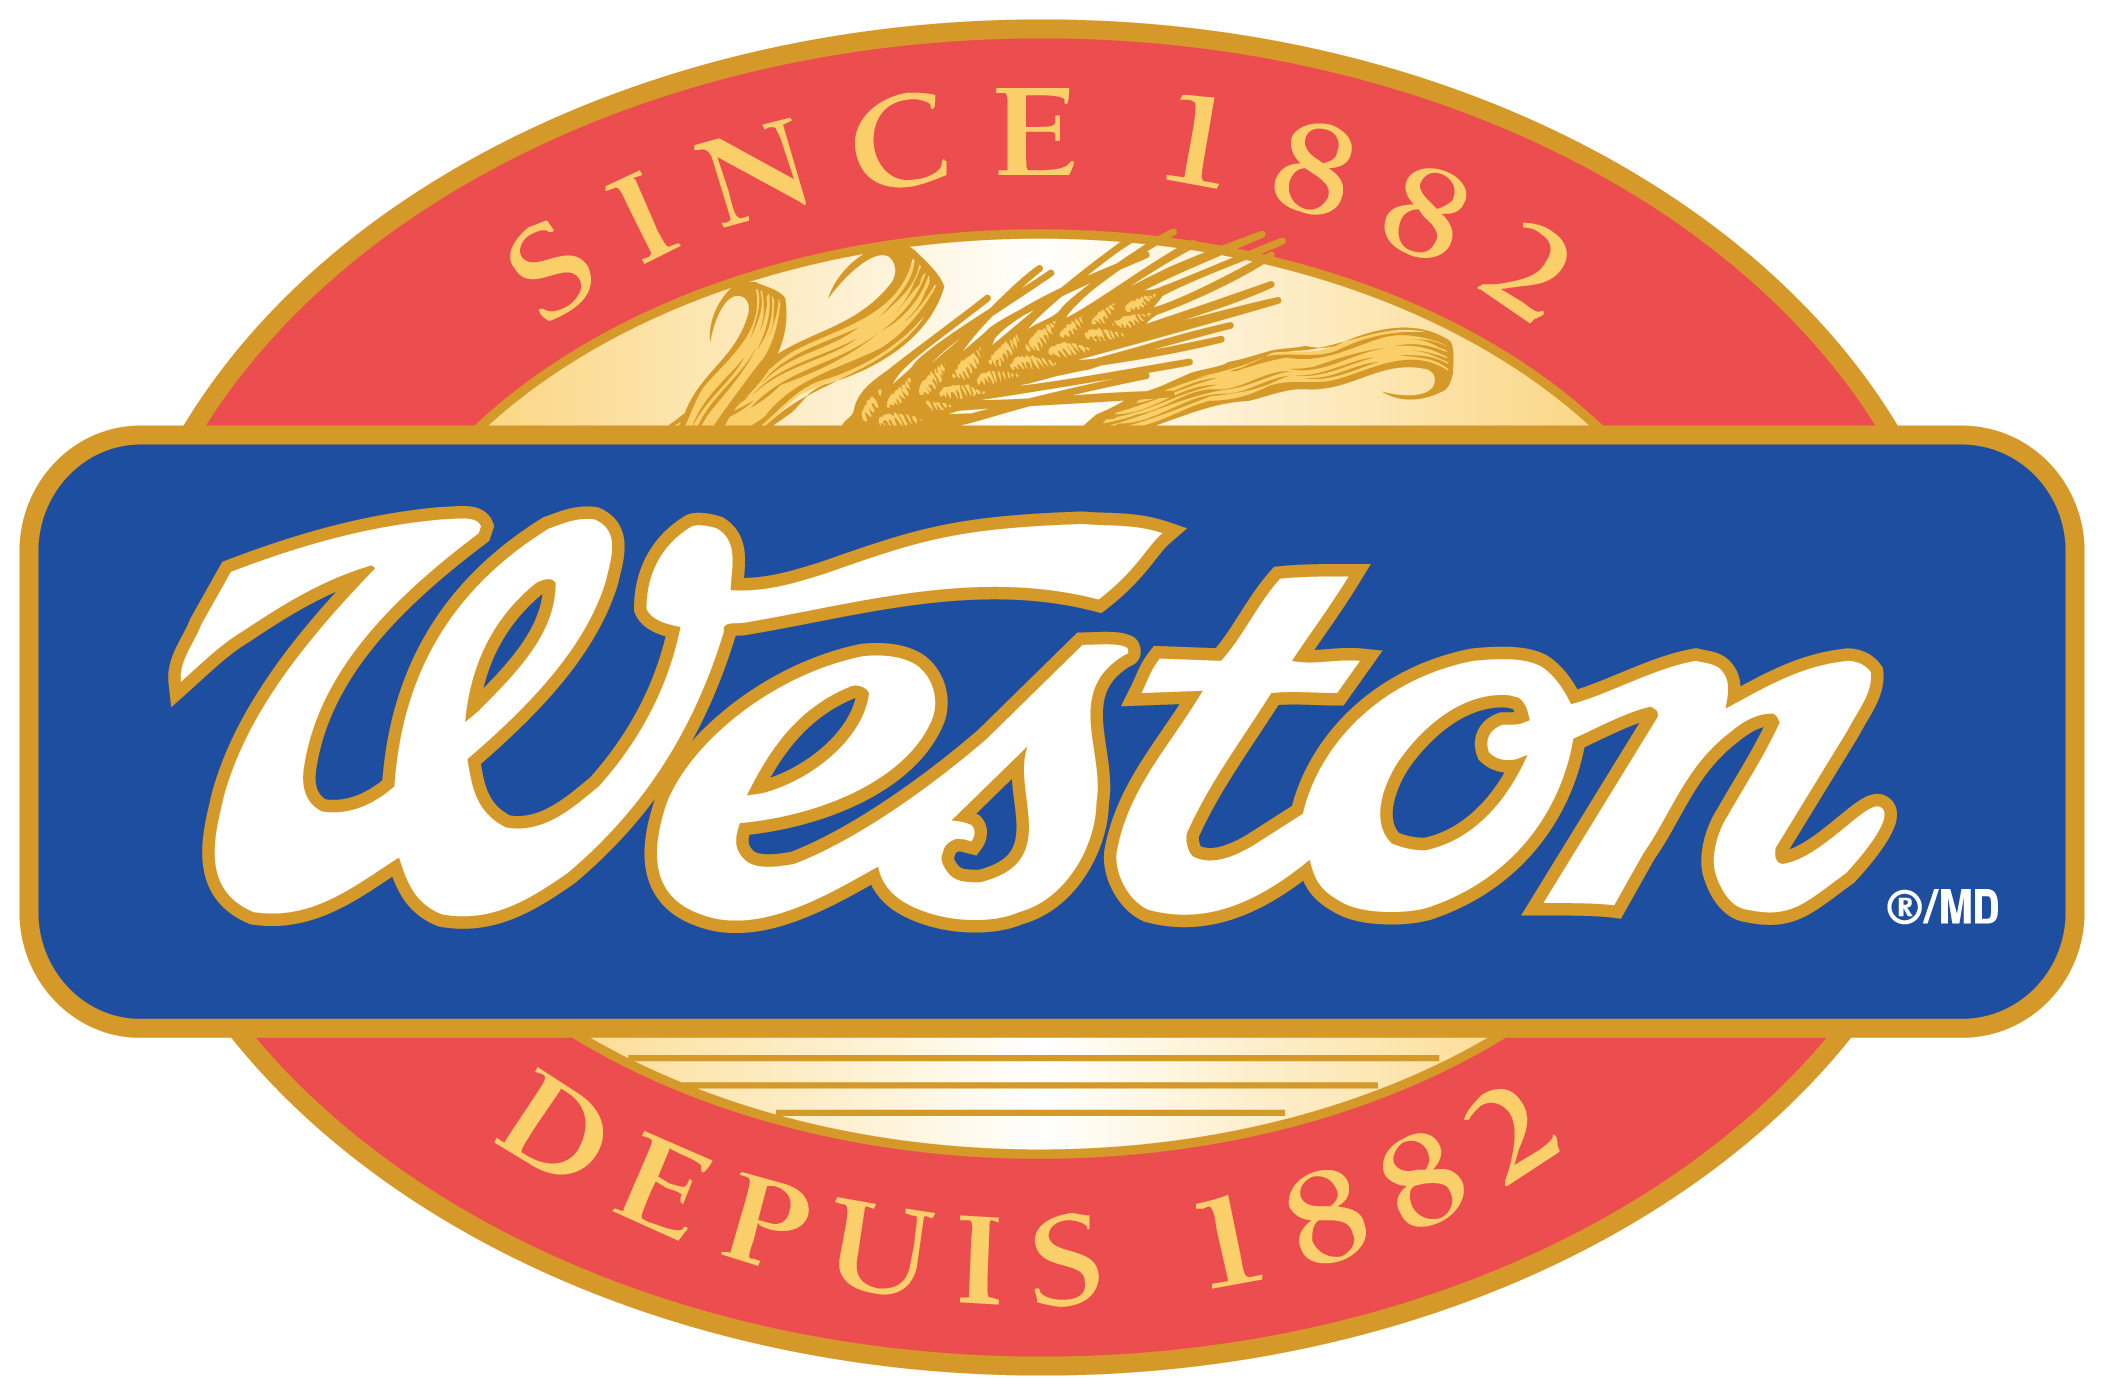 Weston - Cycling Tour Alberta - Charity Bike Ride Alberta